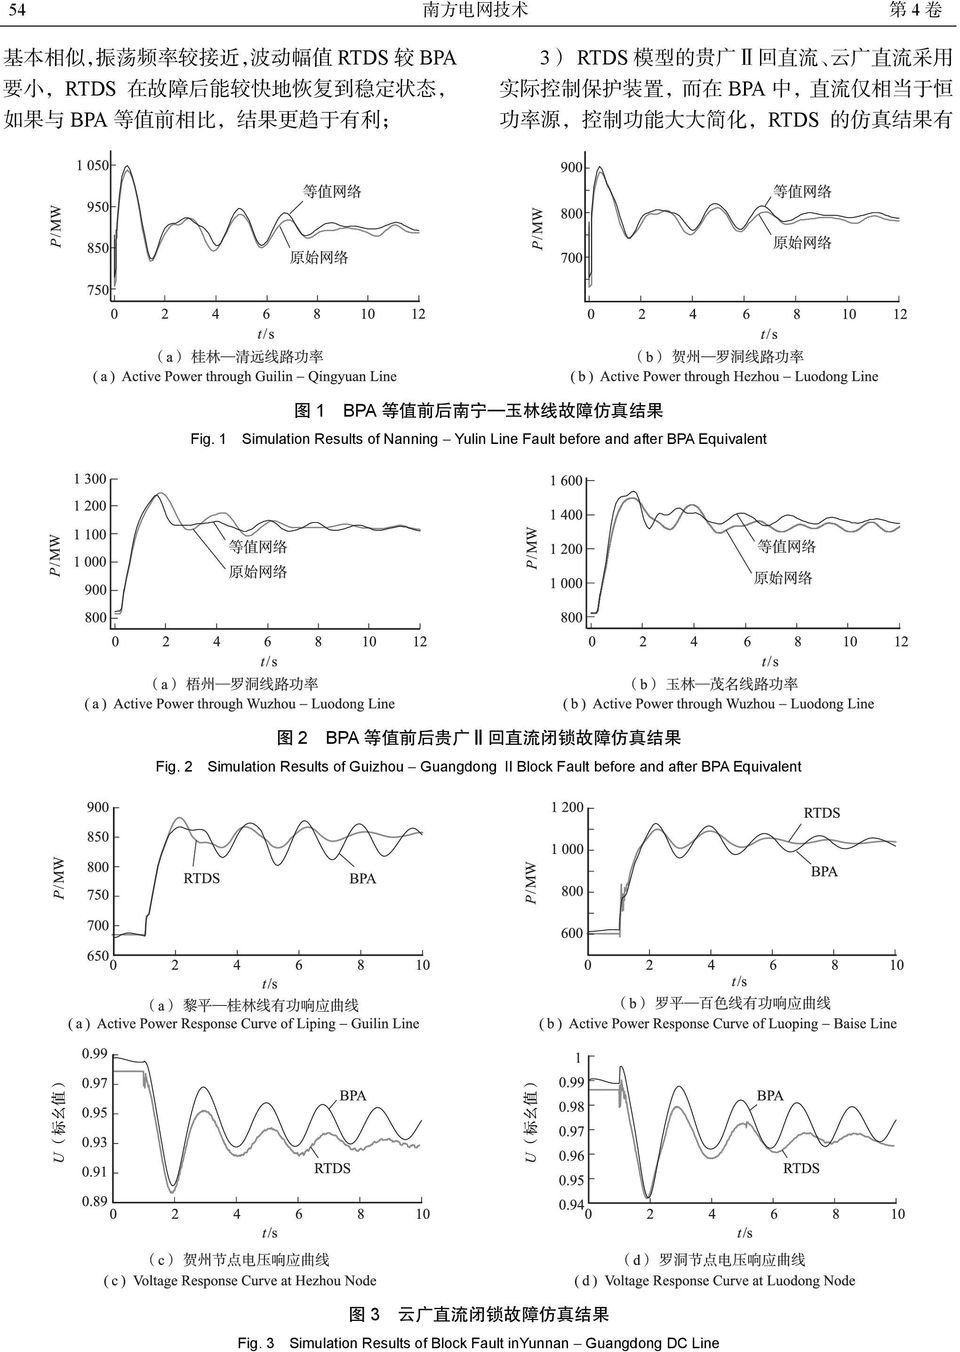 1 Simulation Results of Nanning Yulin Line Fault before and after BPA Equivalent 图 2 BPA 等 值 前 后 贵 广 Ⅱ 回 直 流 闭 锁 故 障 仿 真 结 果 Fig.